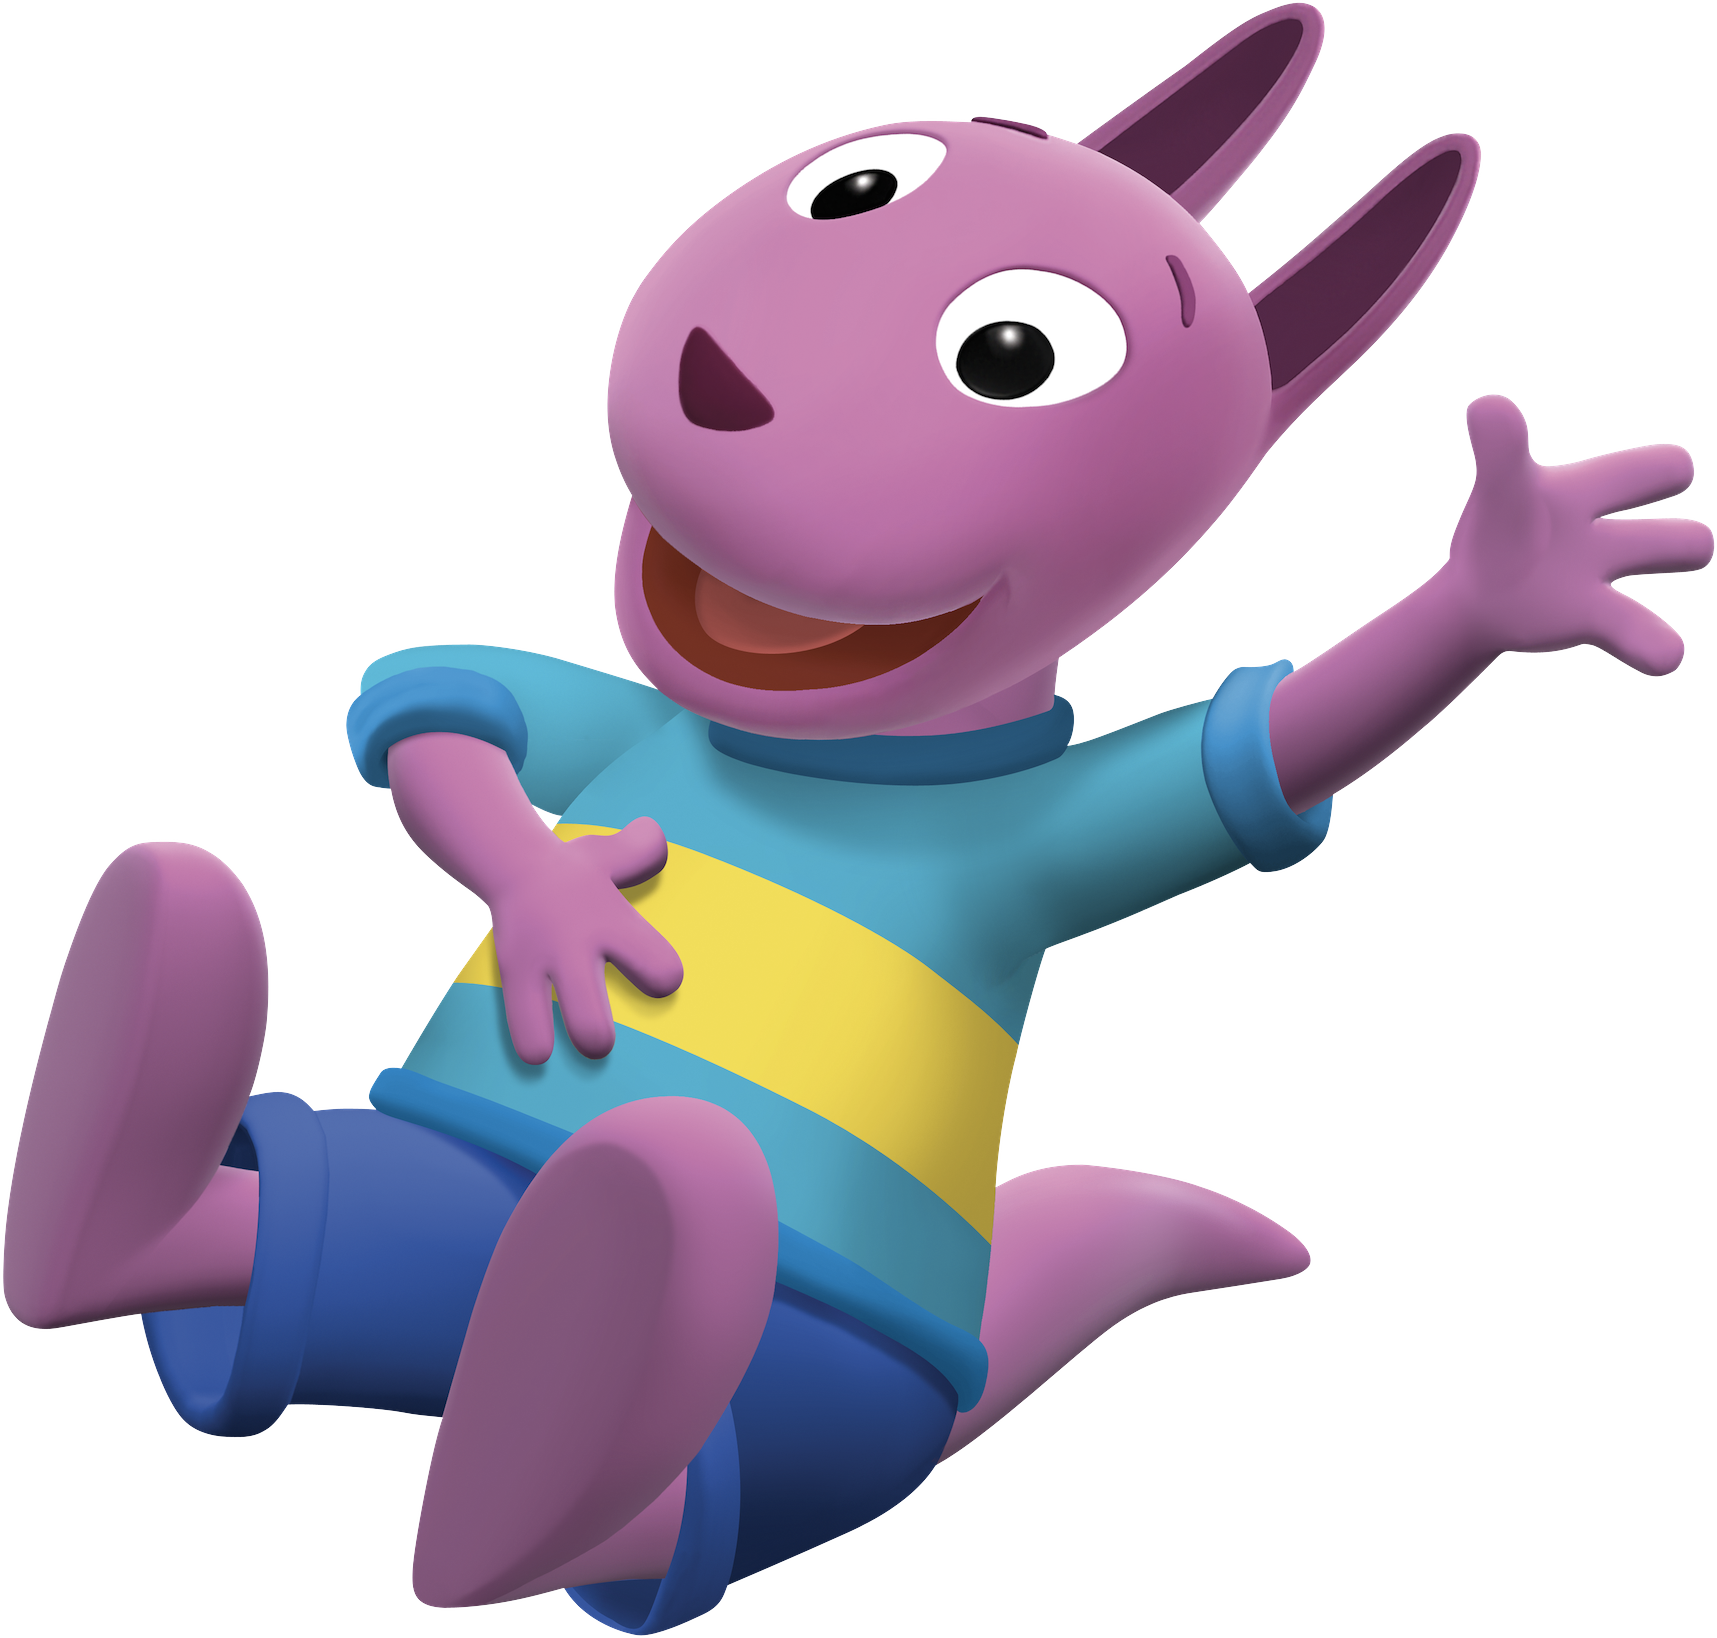 Beau The Backyardigans Austin Laughing Nickelodeon Nick Jr. Character Image.png